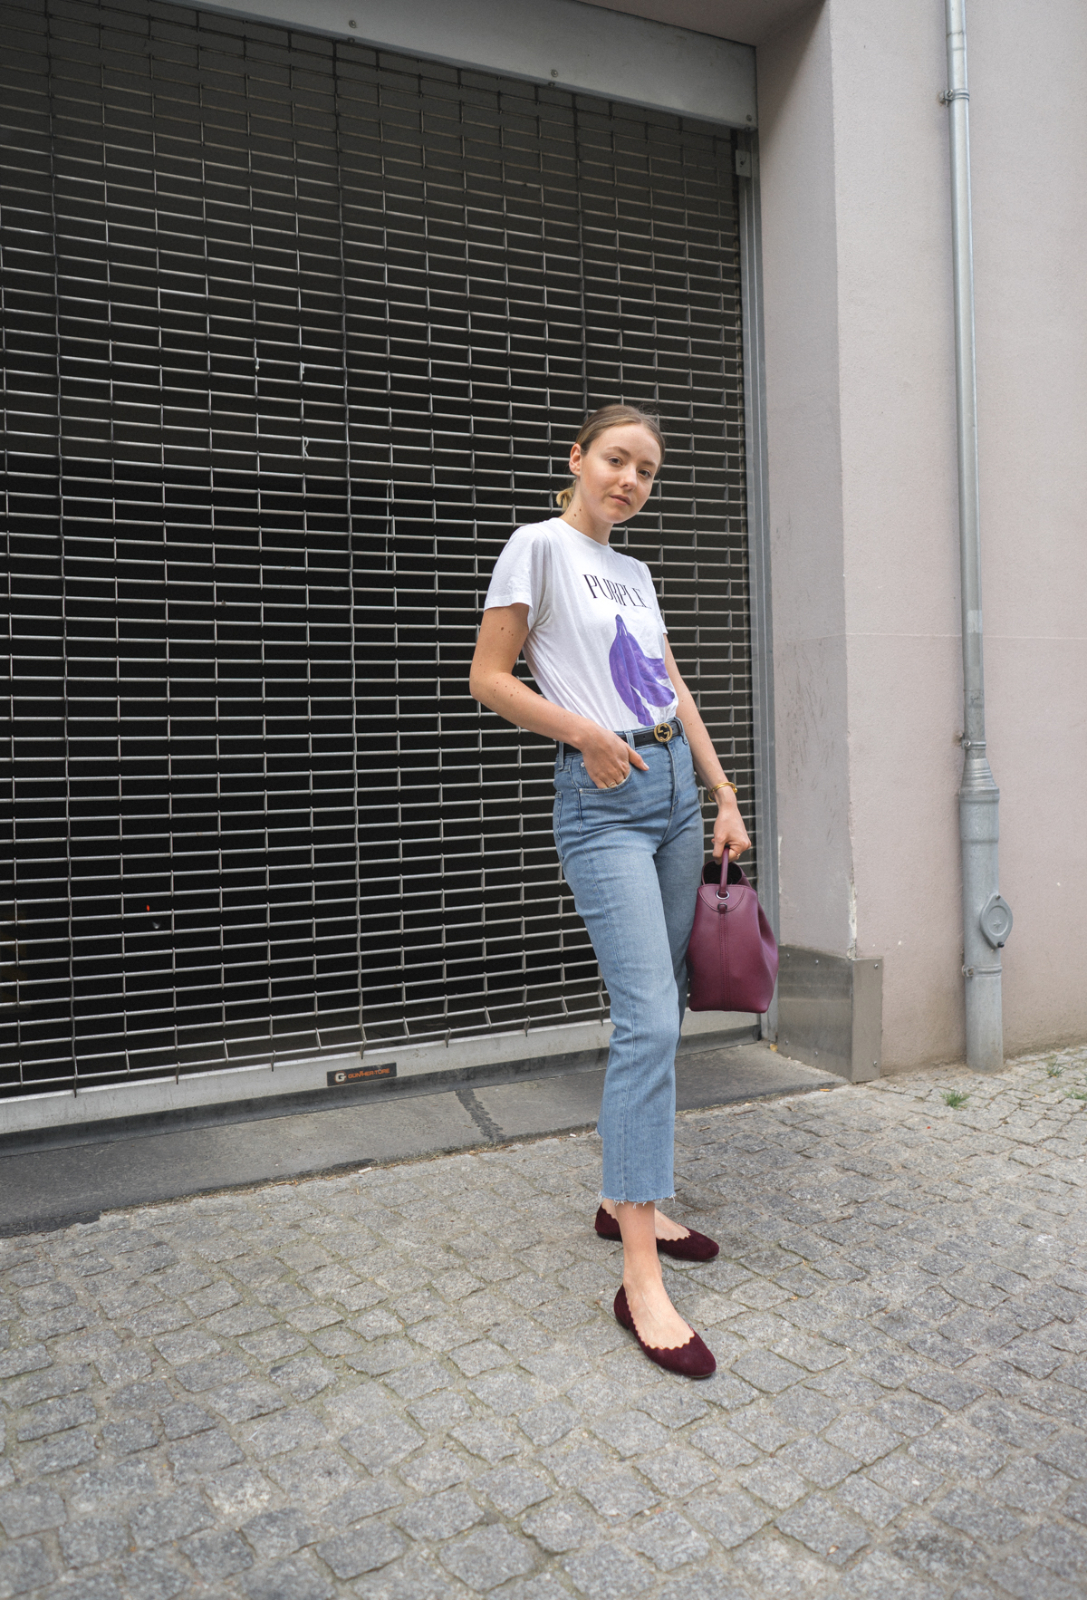 MateBook_The-Limits-of-Control-Fashion-Fashionblogger-Blogger-Berlin-Deutschland-Modeblog-Modeblogger-Huawei